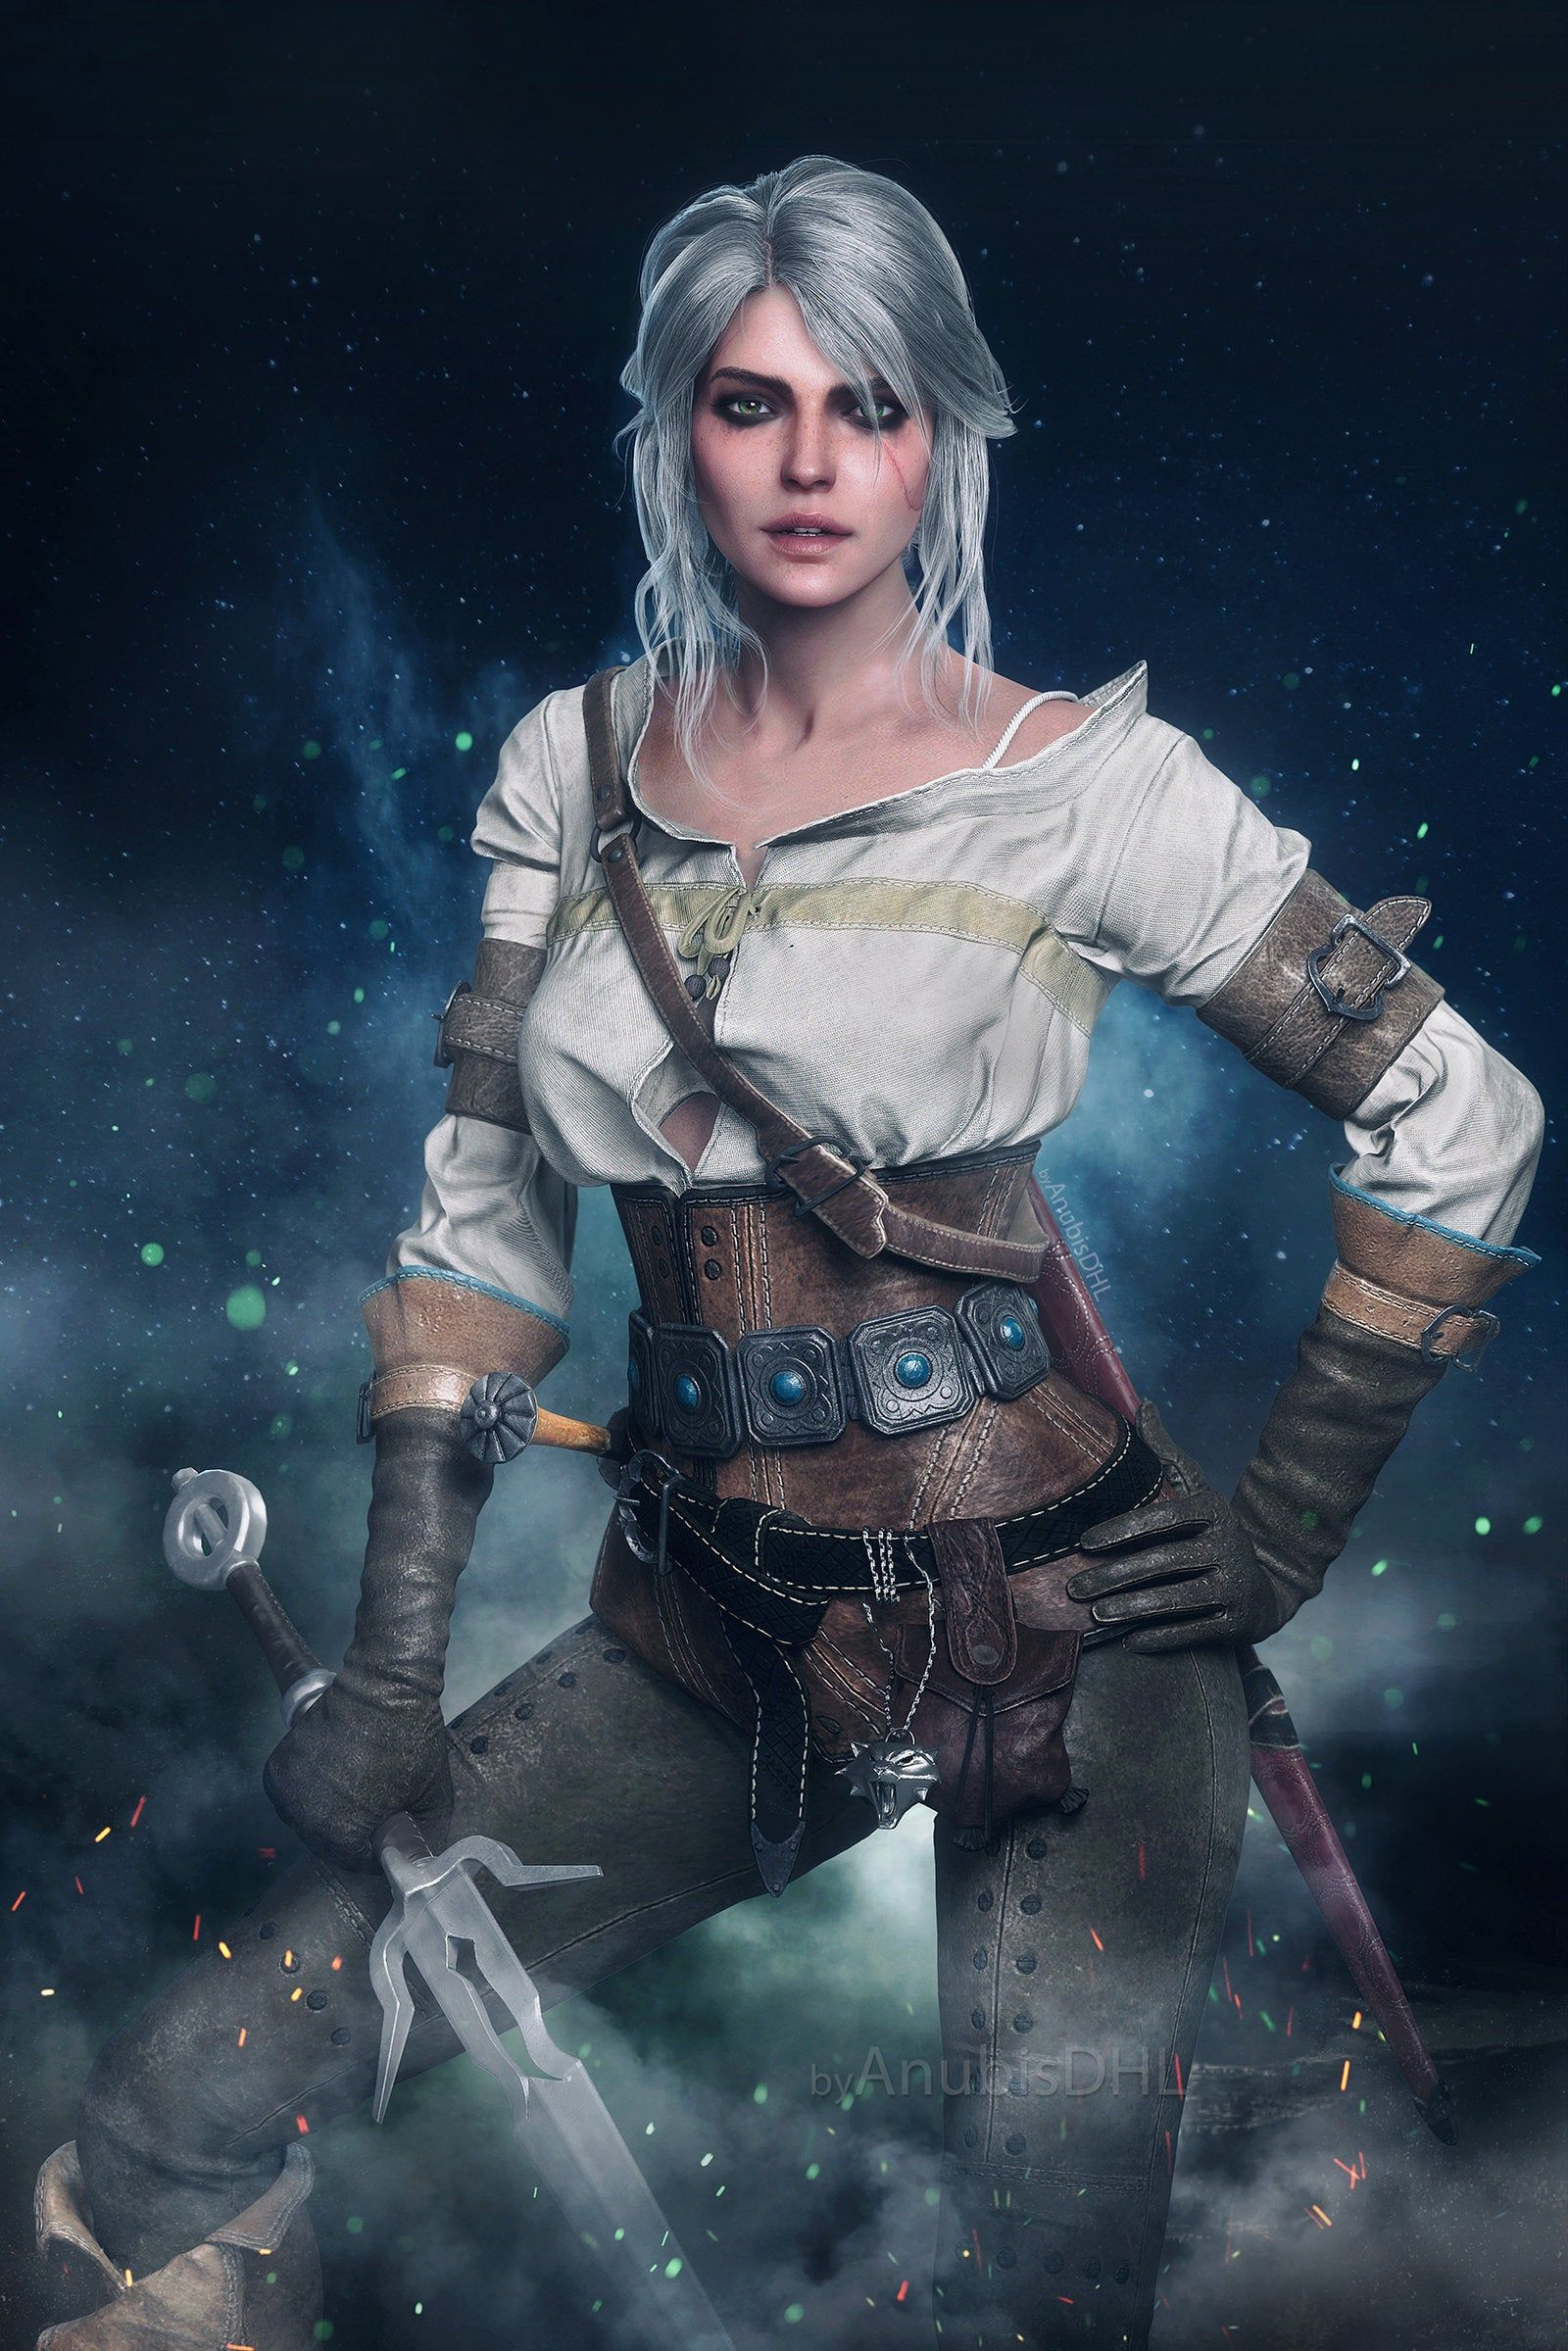 r/witcher Witcher Ciri in 2020 The witcher game, The